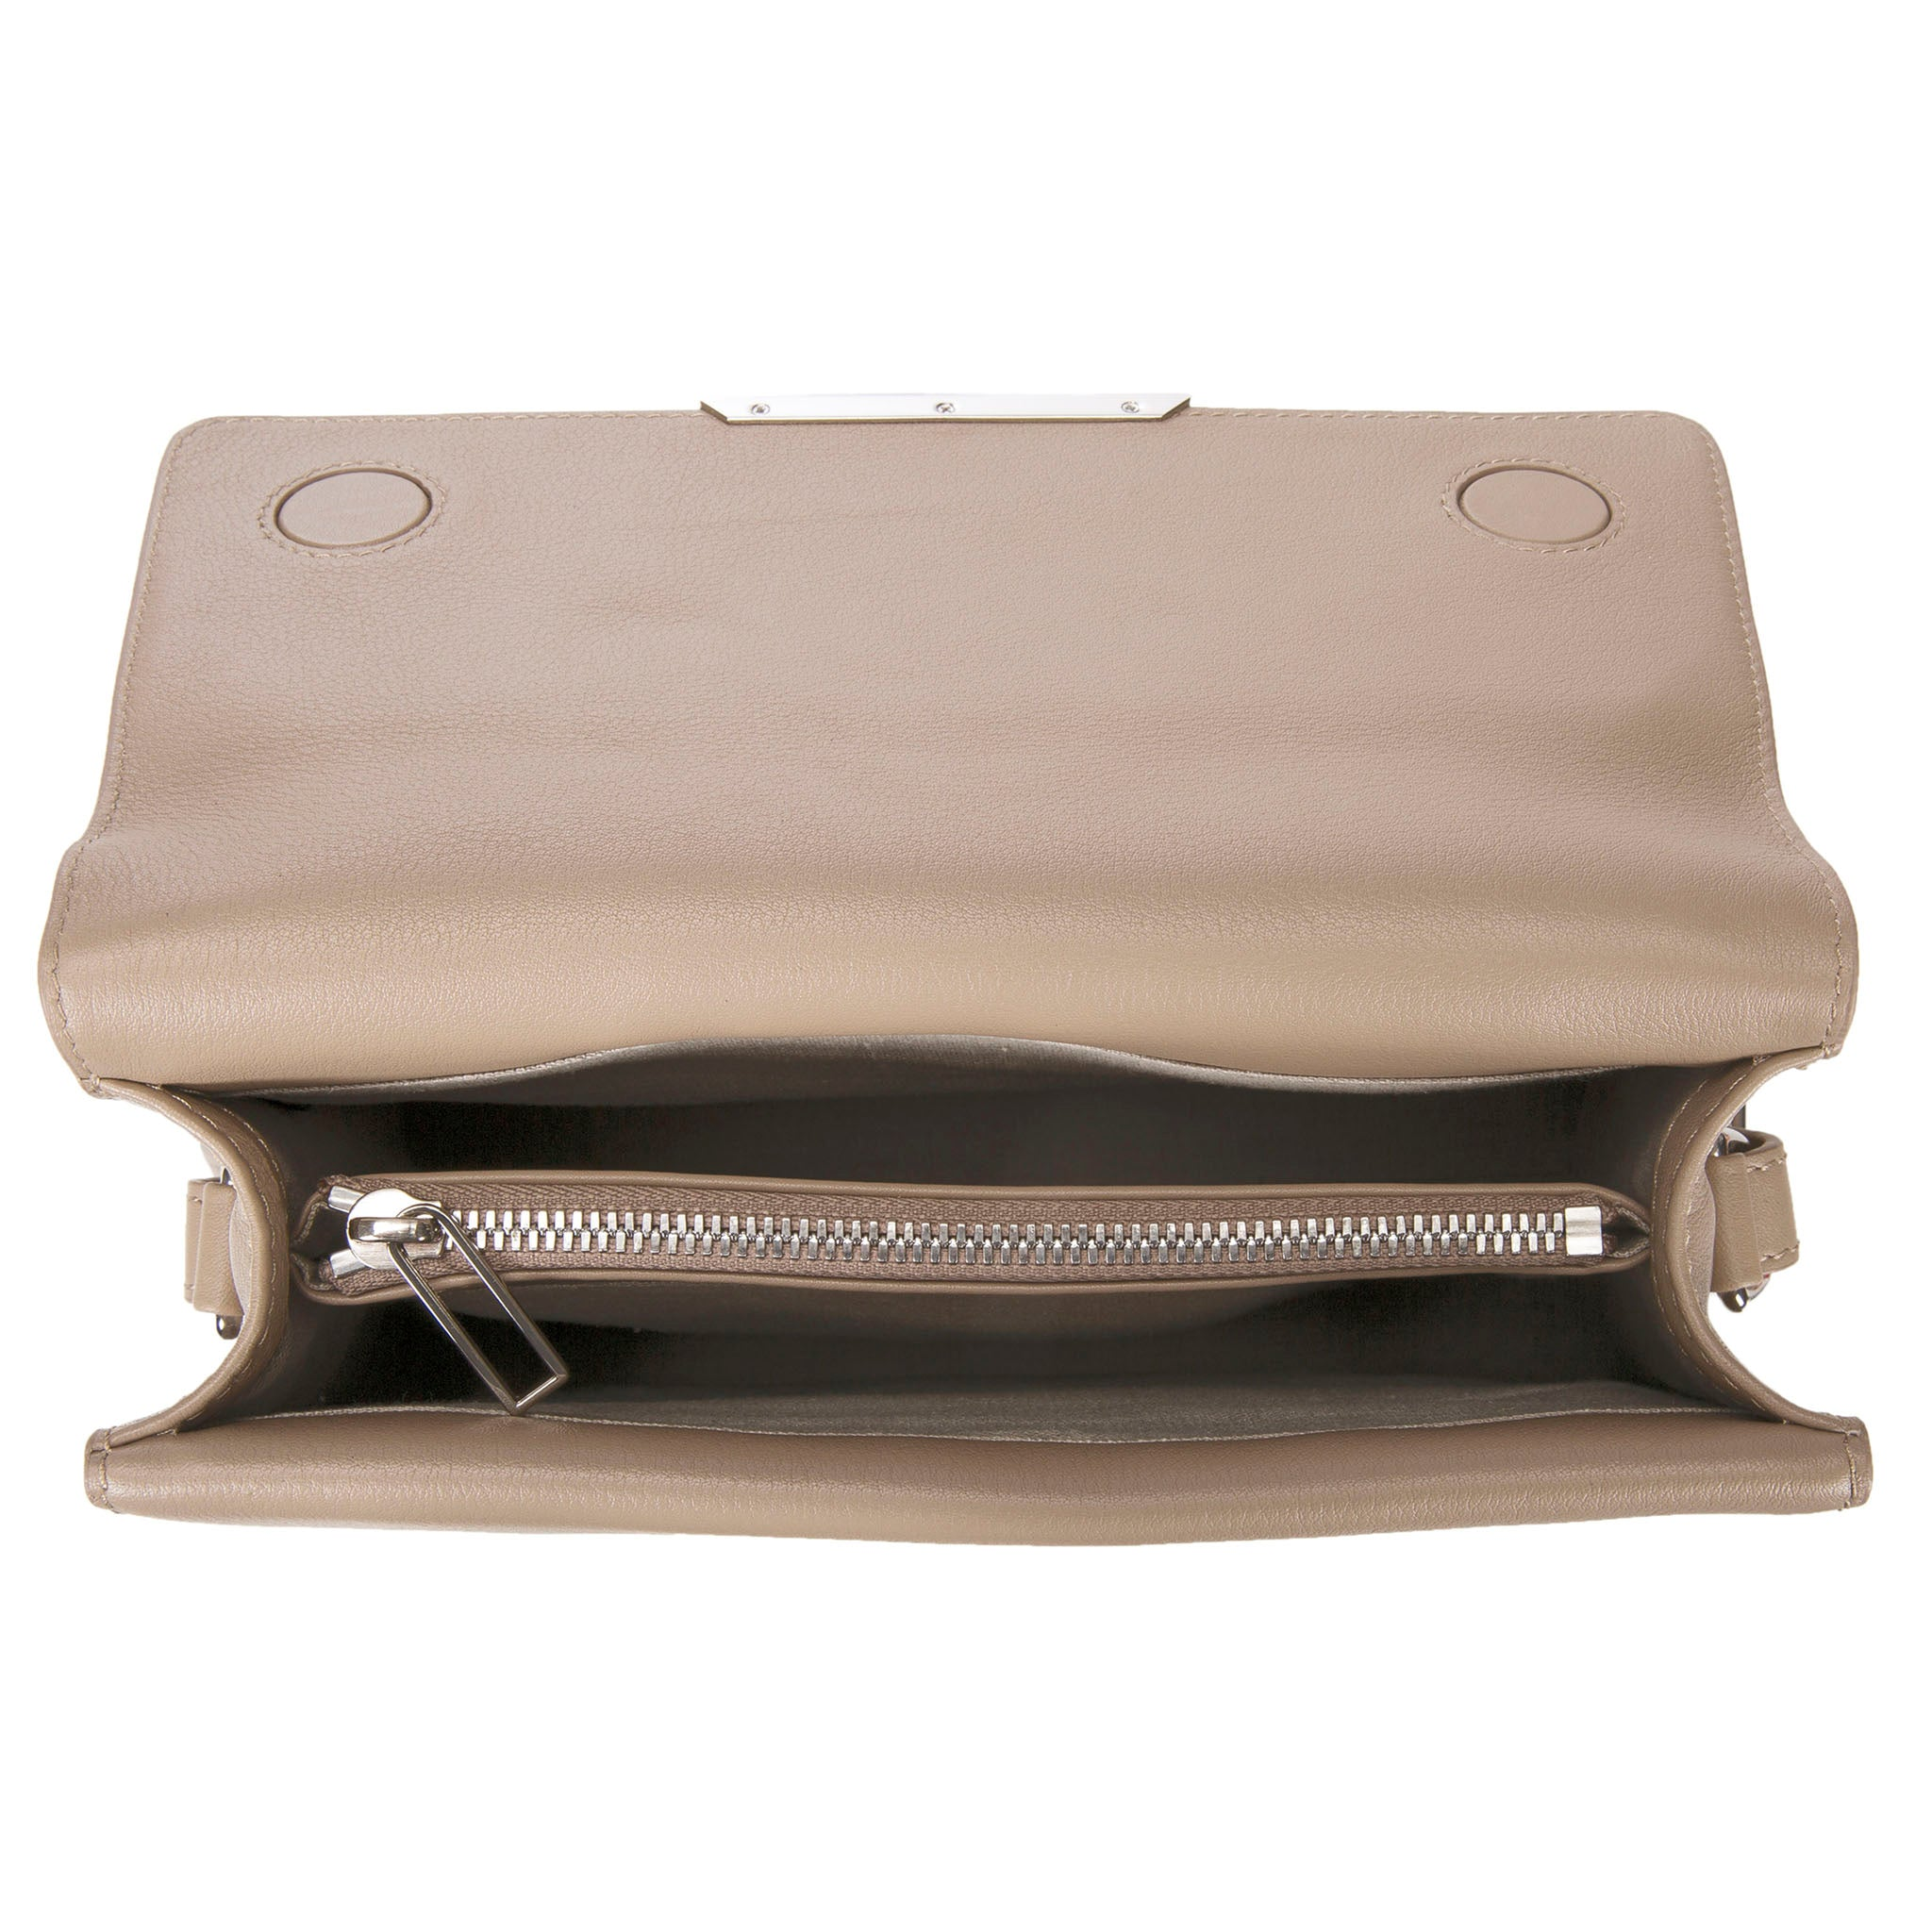 Modern Classic Crossbody Bag Gray Shagreen Top And Buff Leather Body Inside View Jacq - Vivo Direct